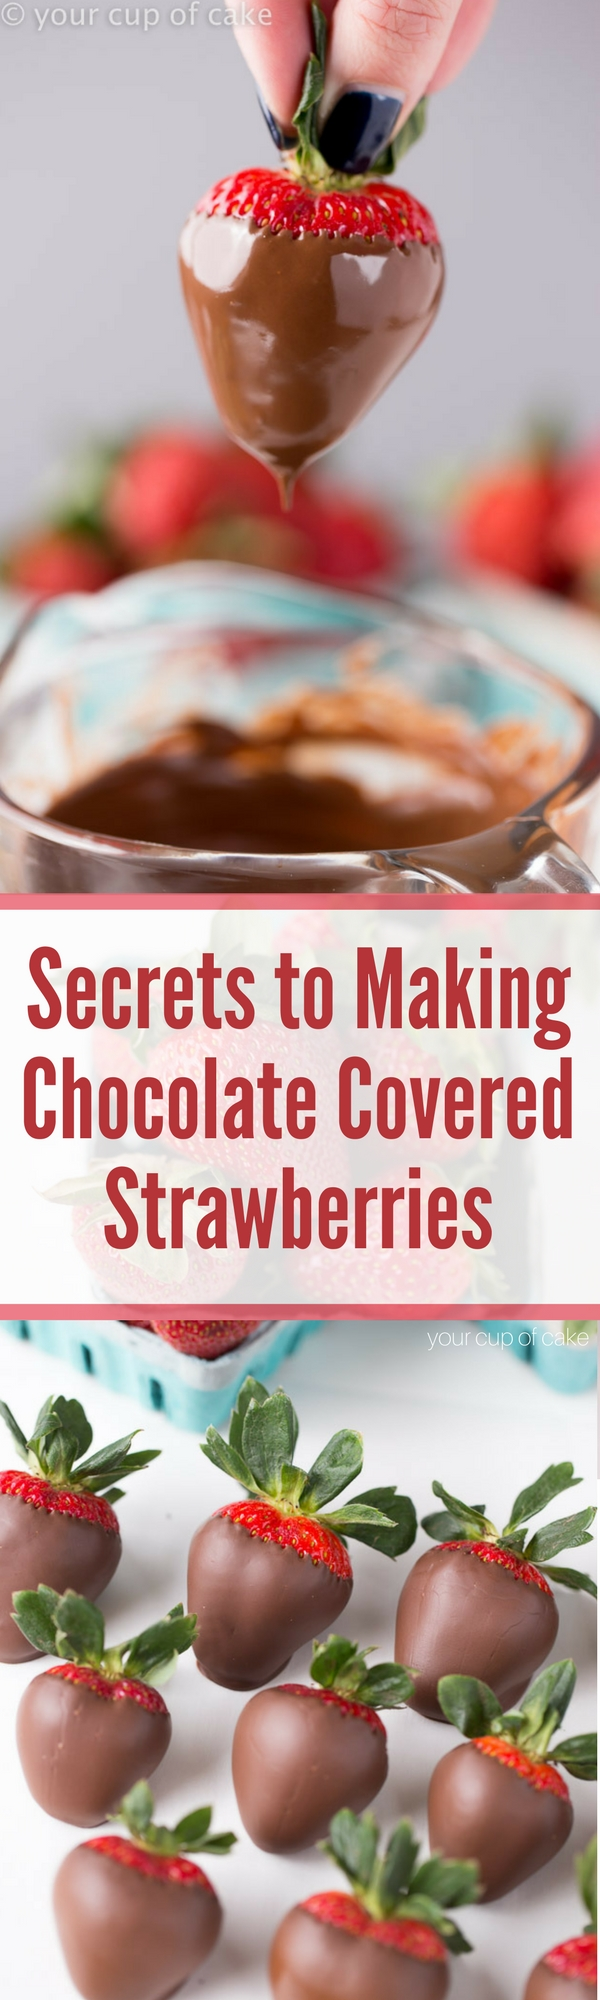 The Secrets to Making Perfect Chocolate Covered Strawberries